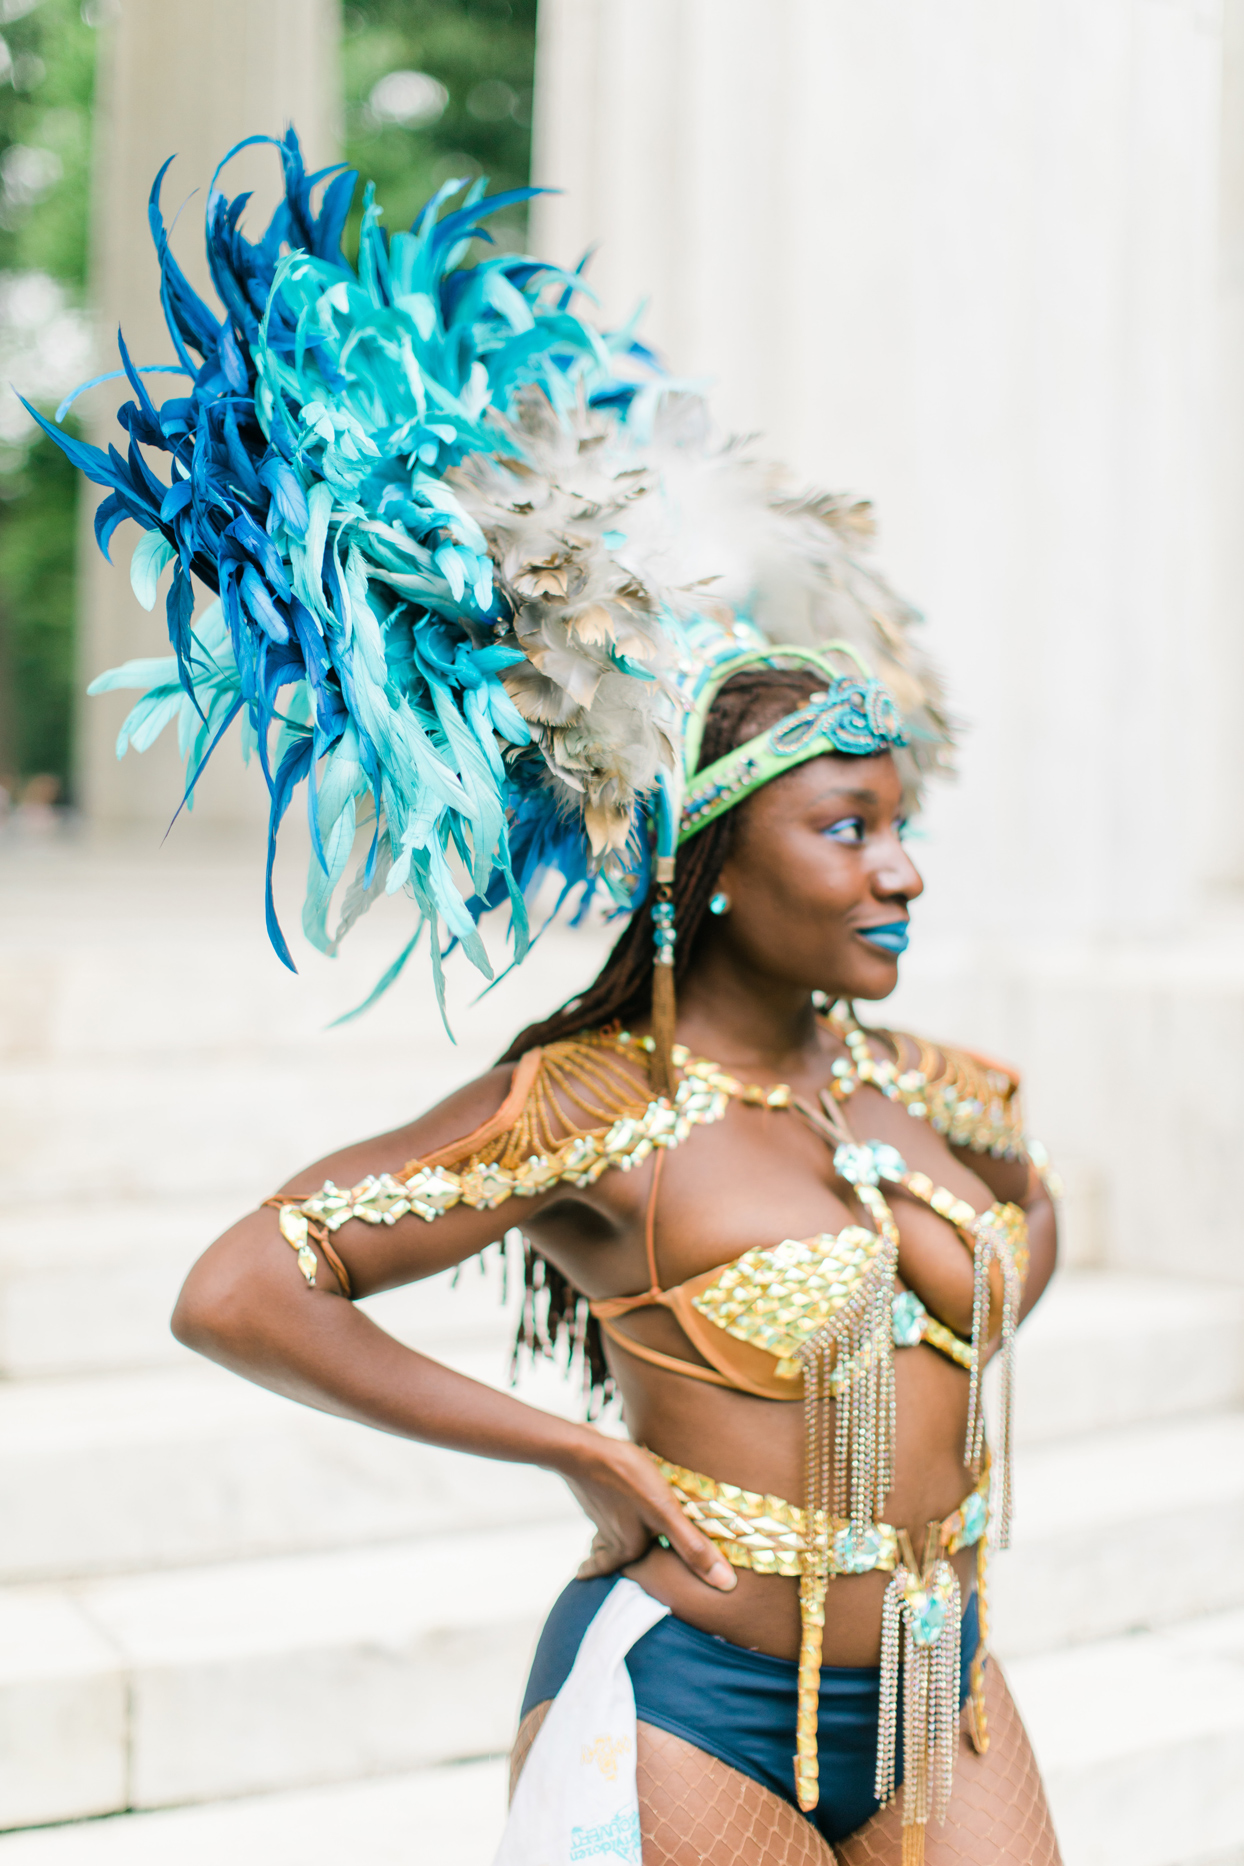 wedding soca dancer wearing blue feathers and gold jewels